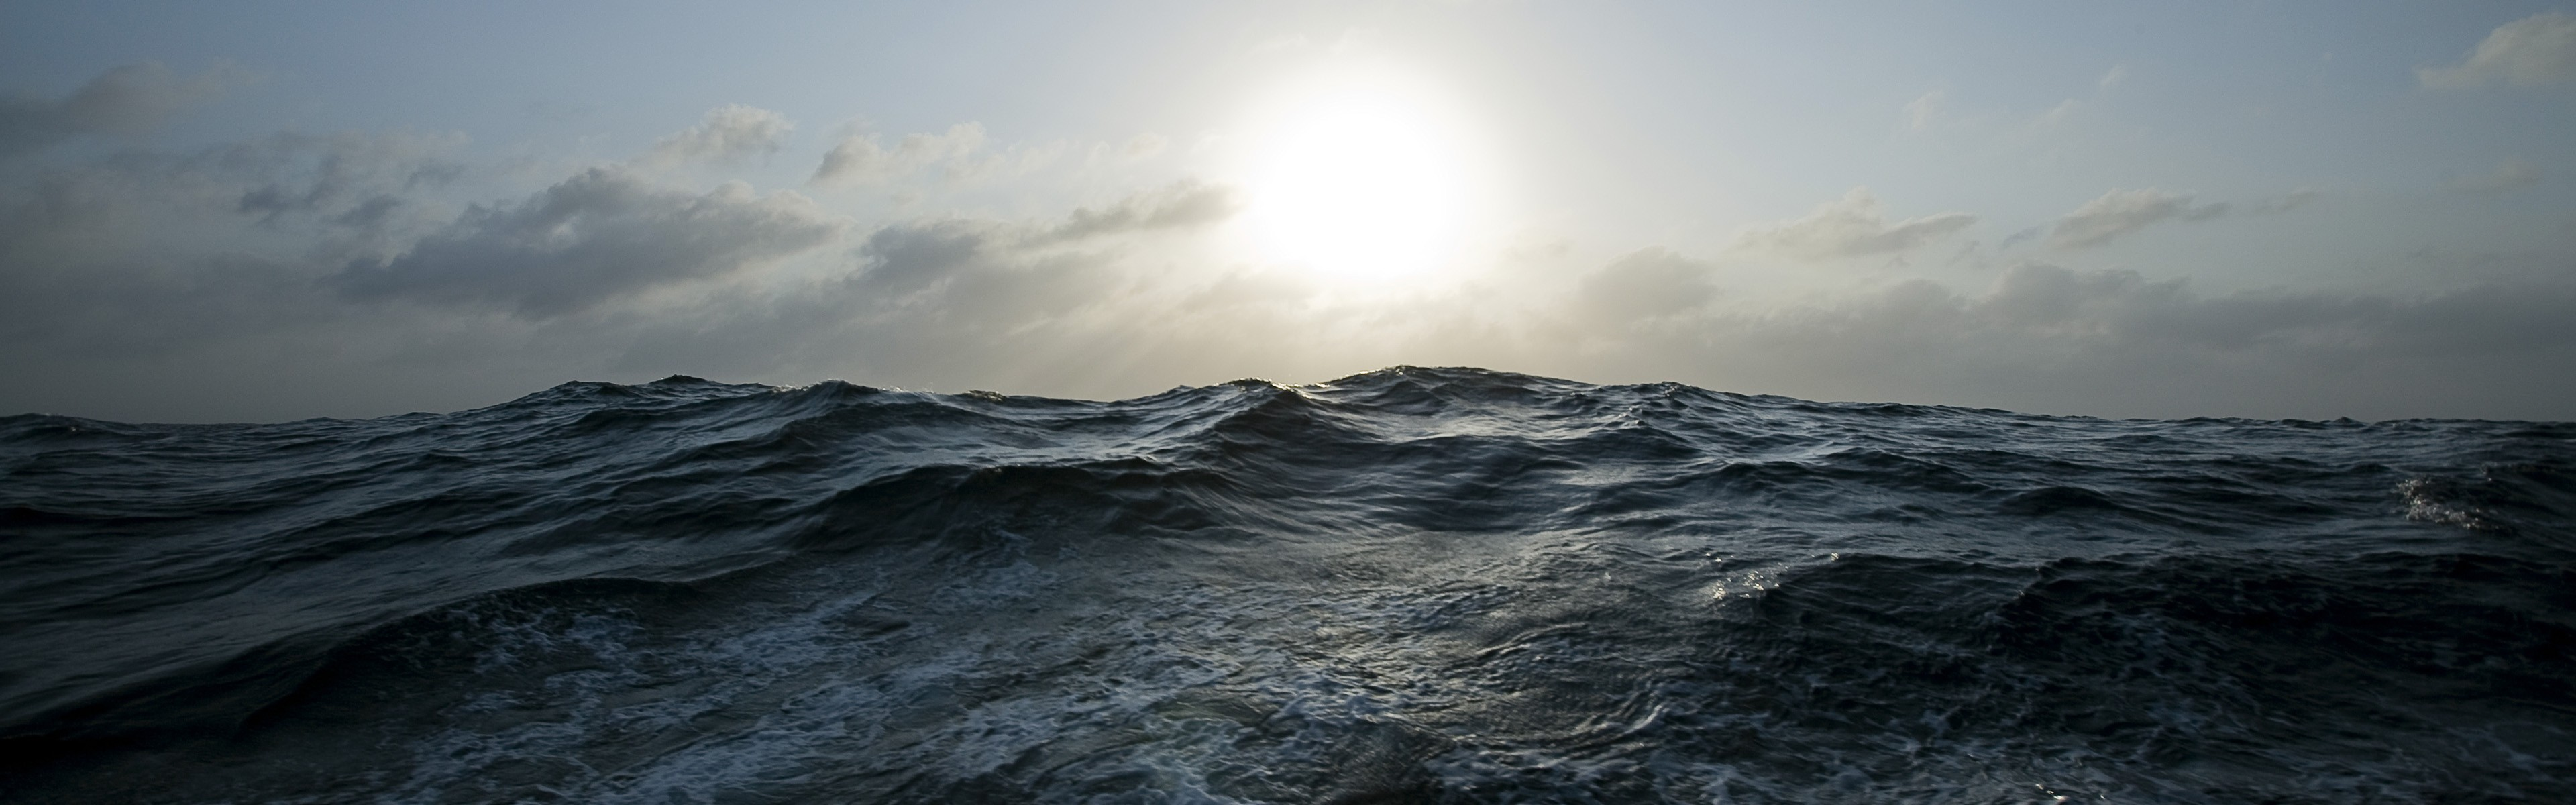 water Sun panorama seascapes